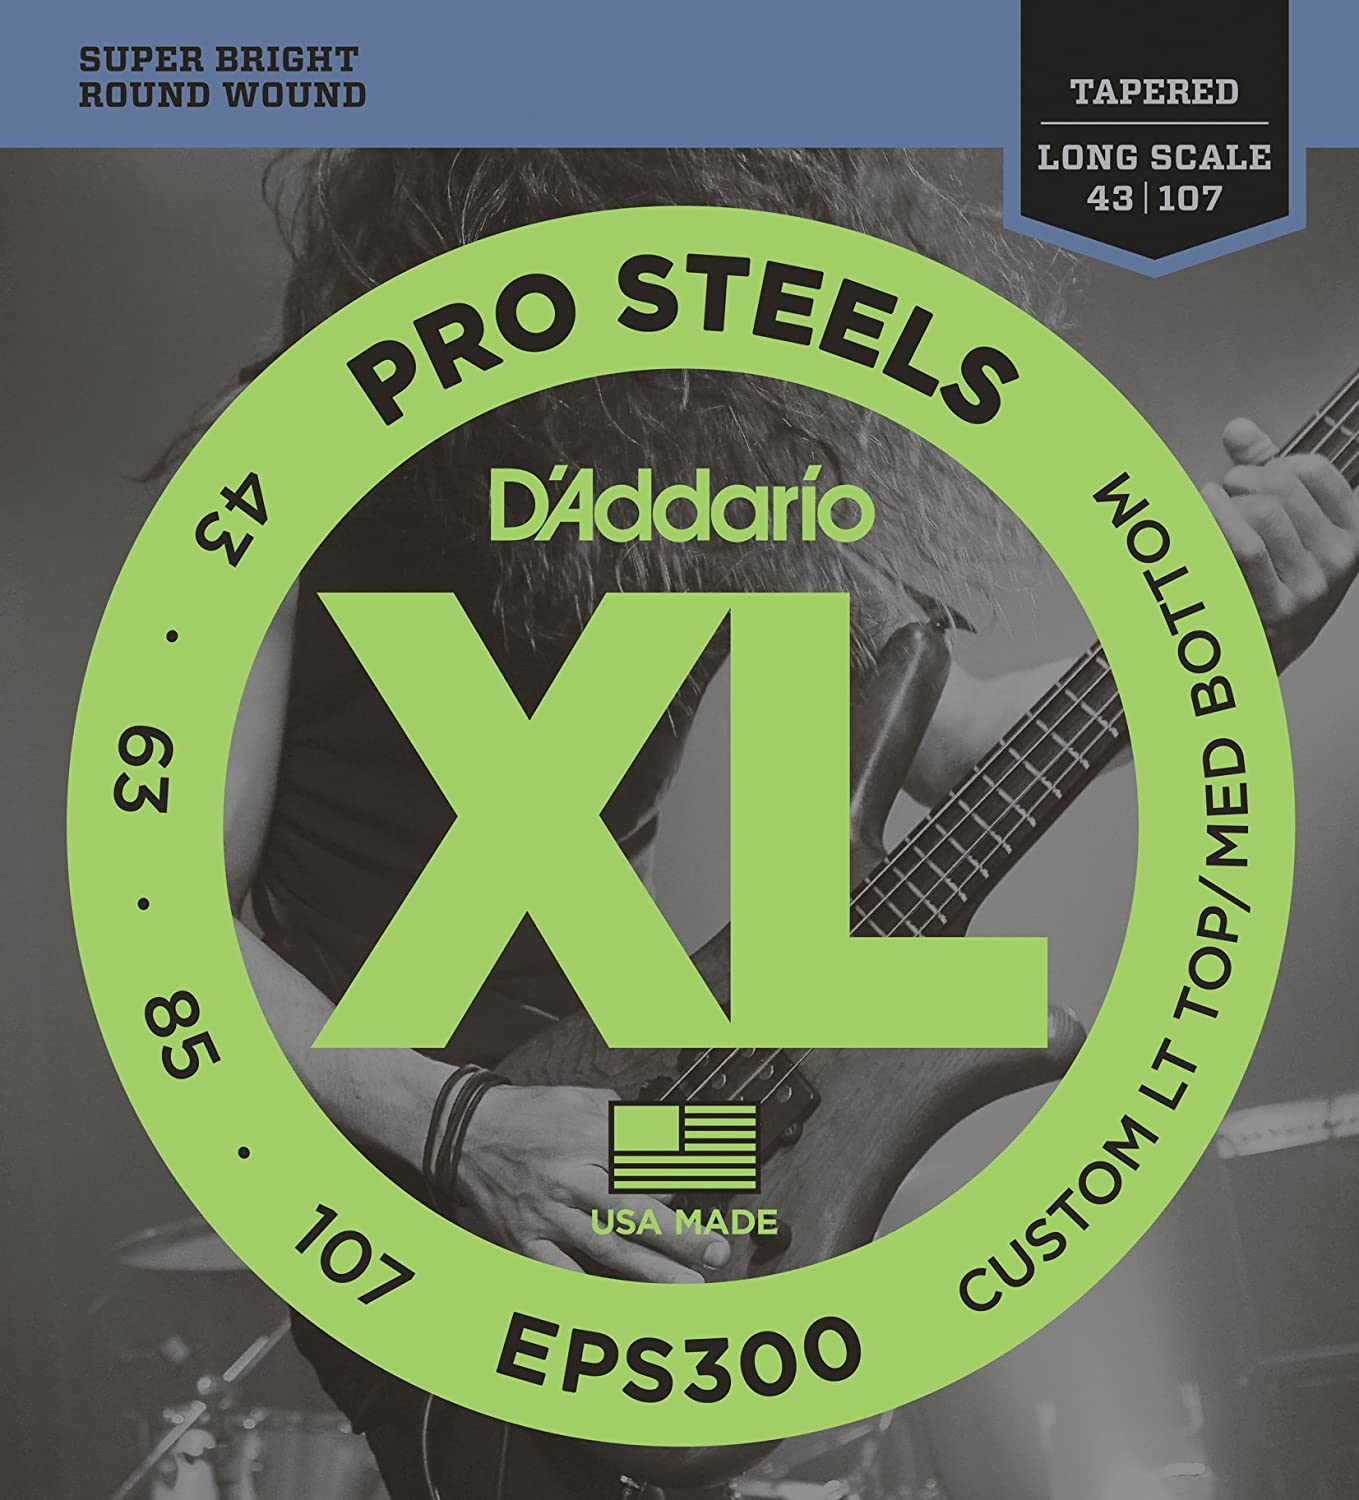 D'Addario EPS300 ProSteels Bass Guitar Strings Custom Light, 43-107, Long Scale D'Addario